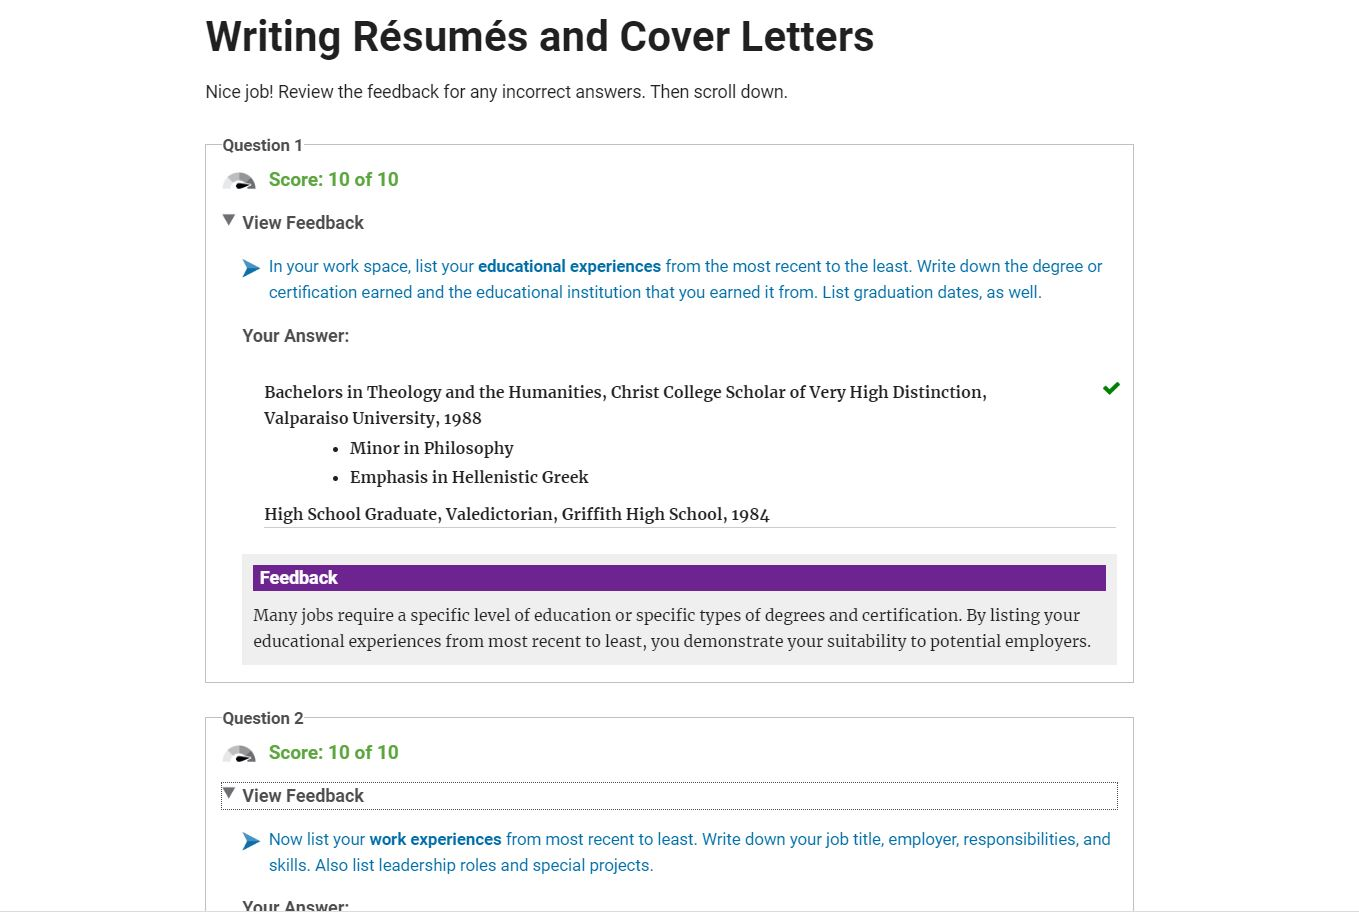 Writing Résumés and Cover Letters - Single License